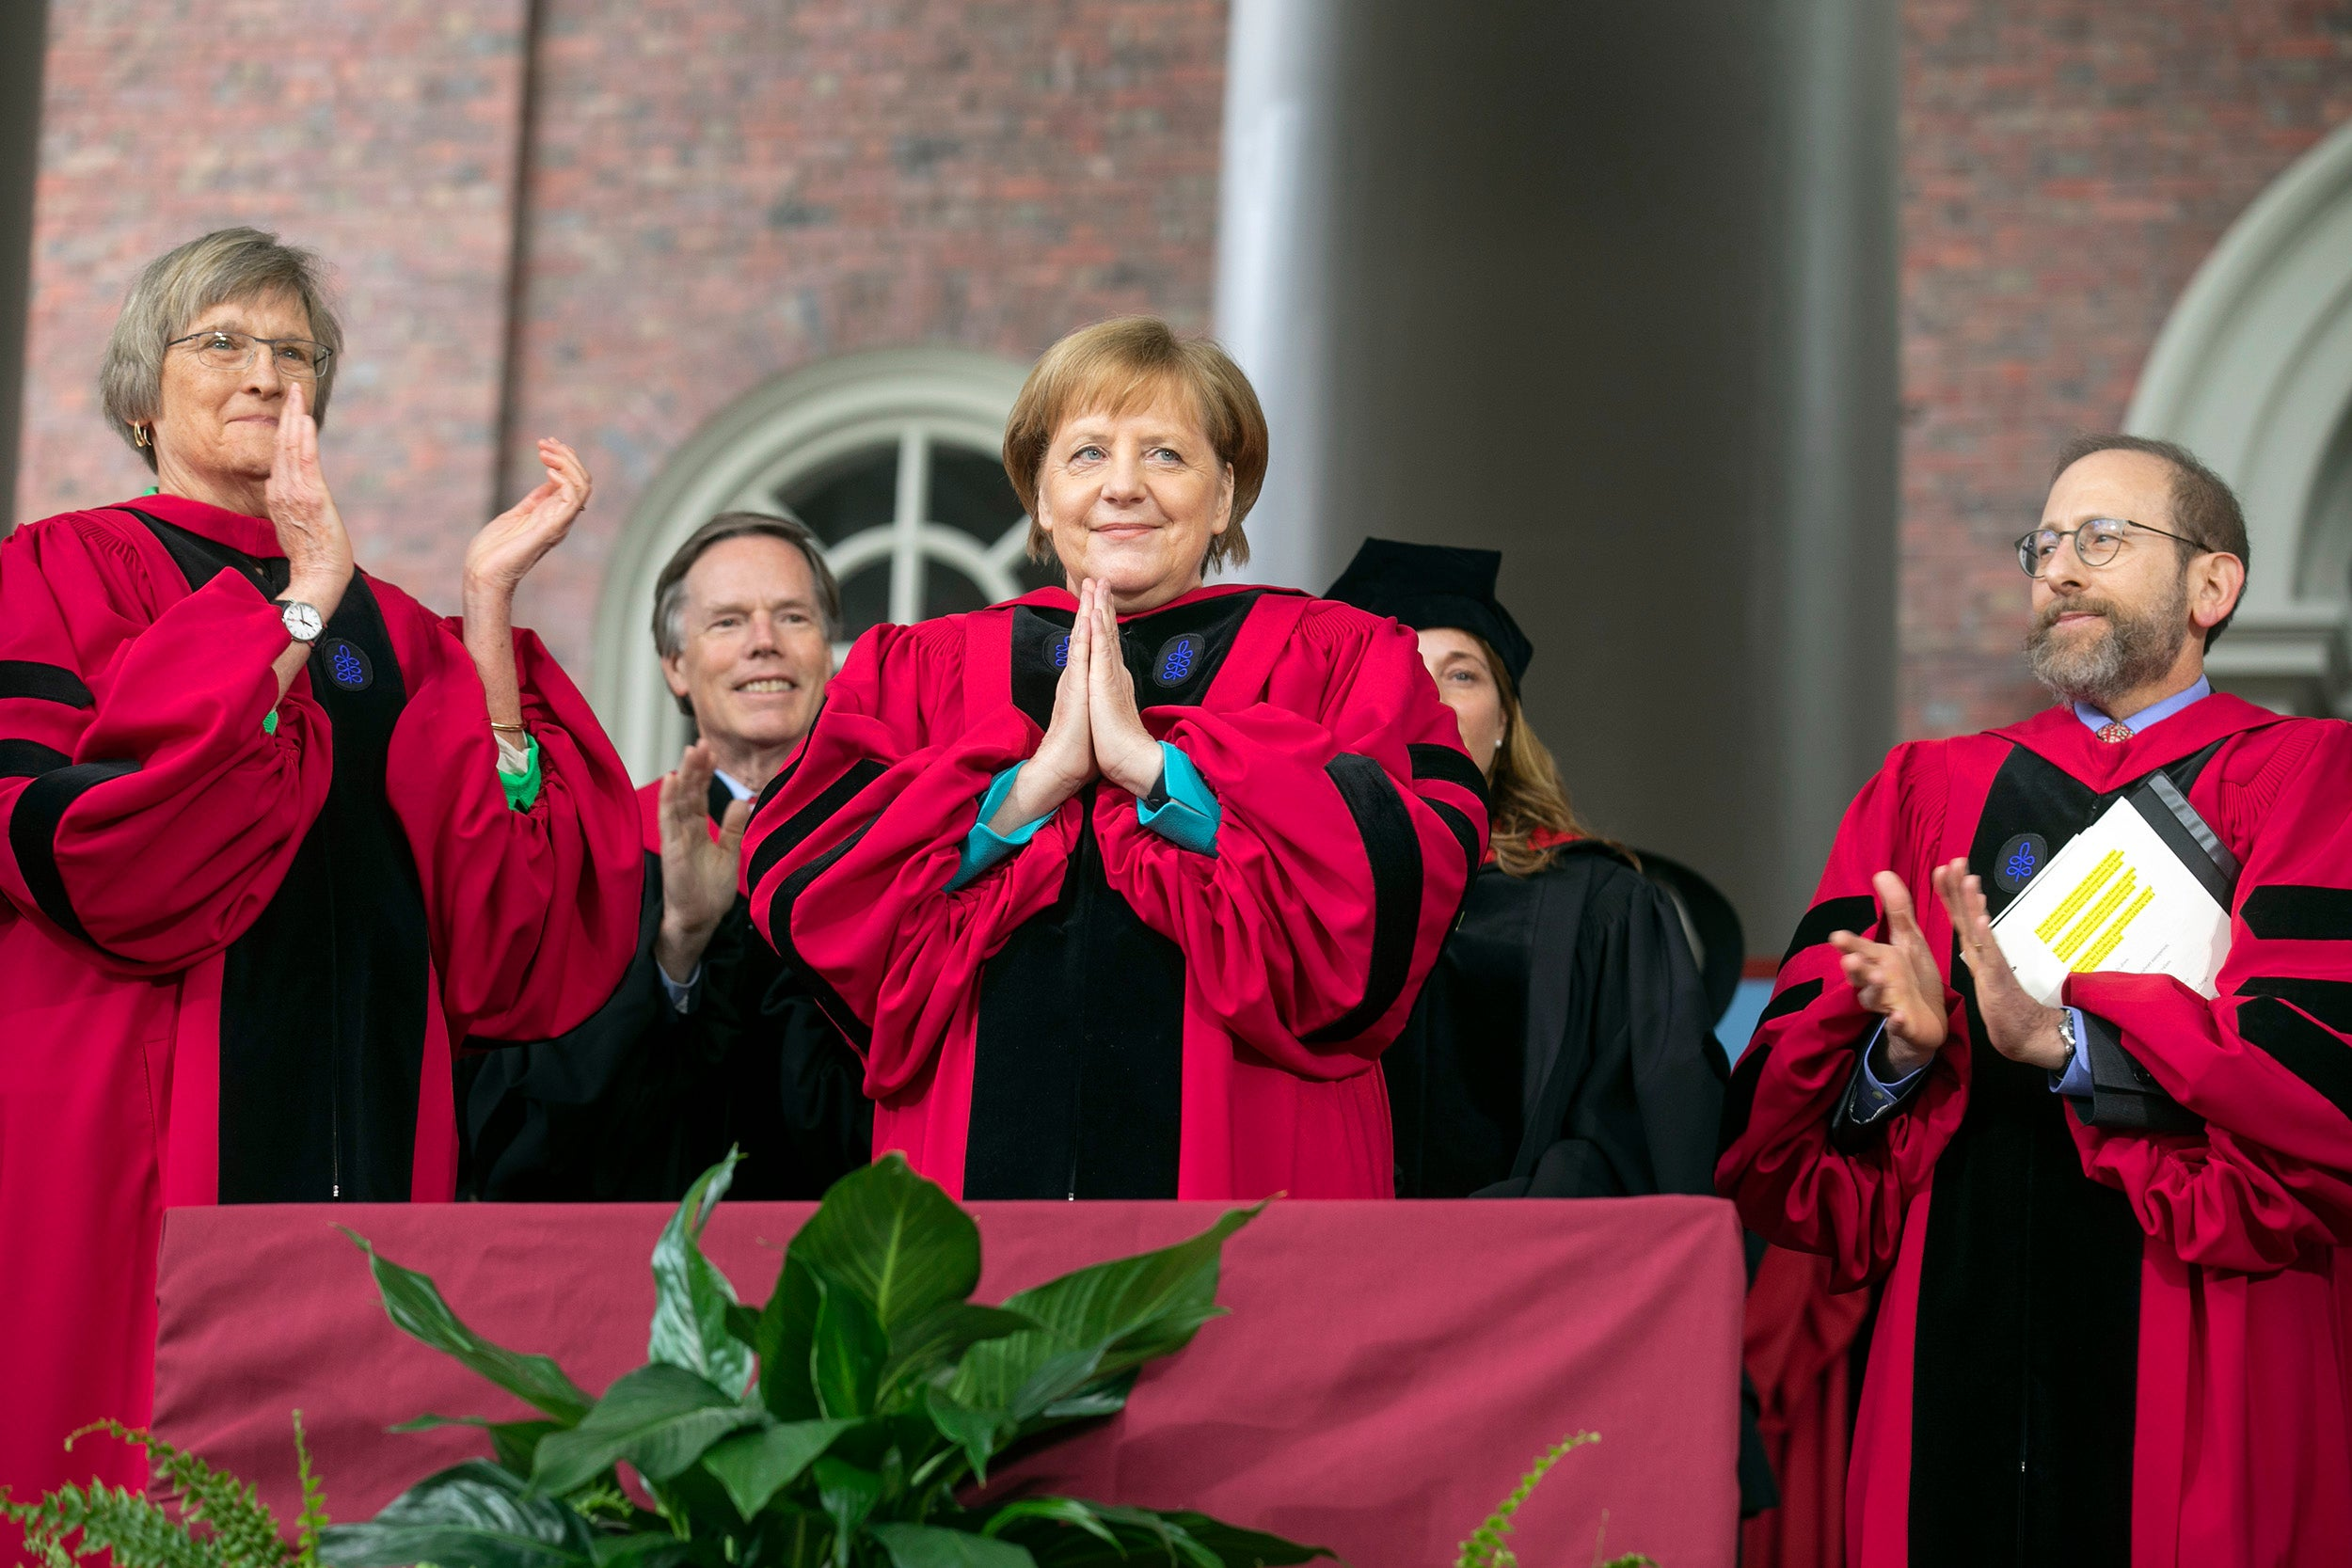 Angela Merkel holds her hands in a prayer acknowledging the applause after receiving her honorary degree.